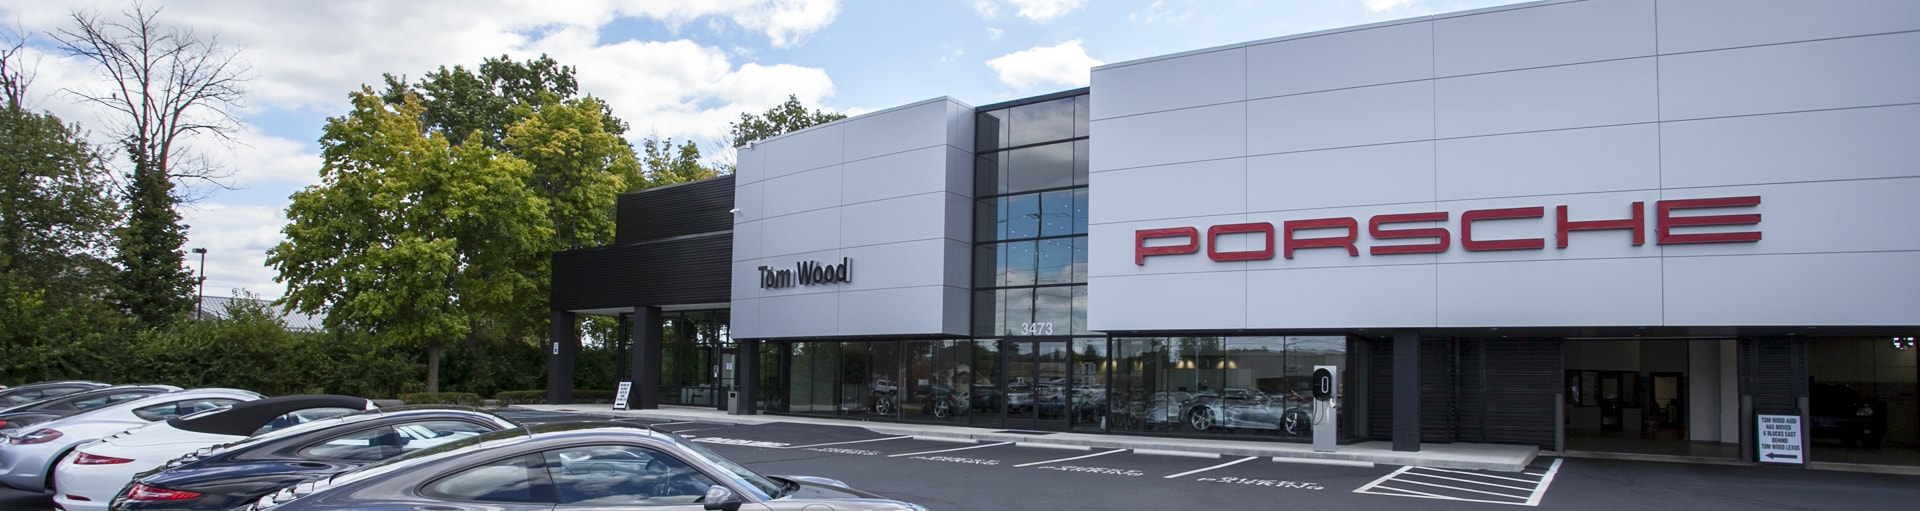 Tom Wood Porsche Service Department